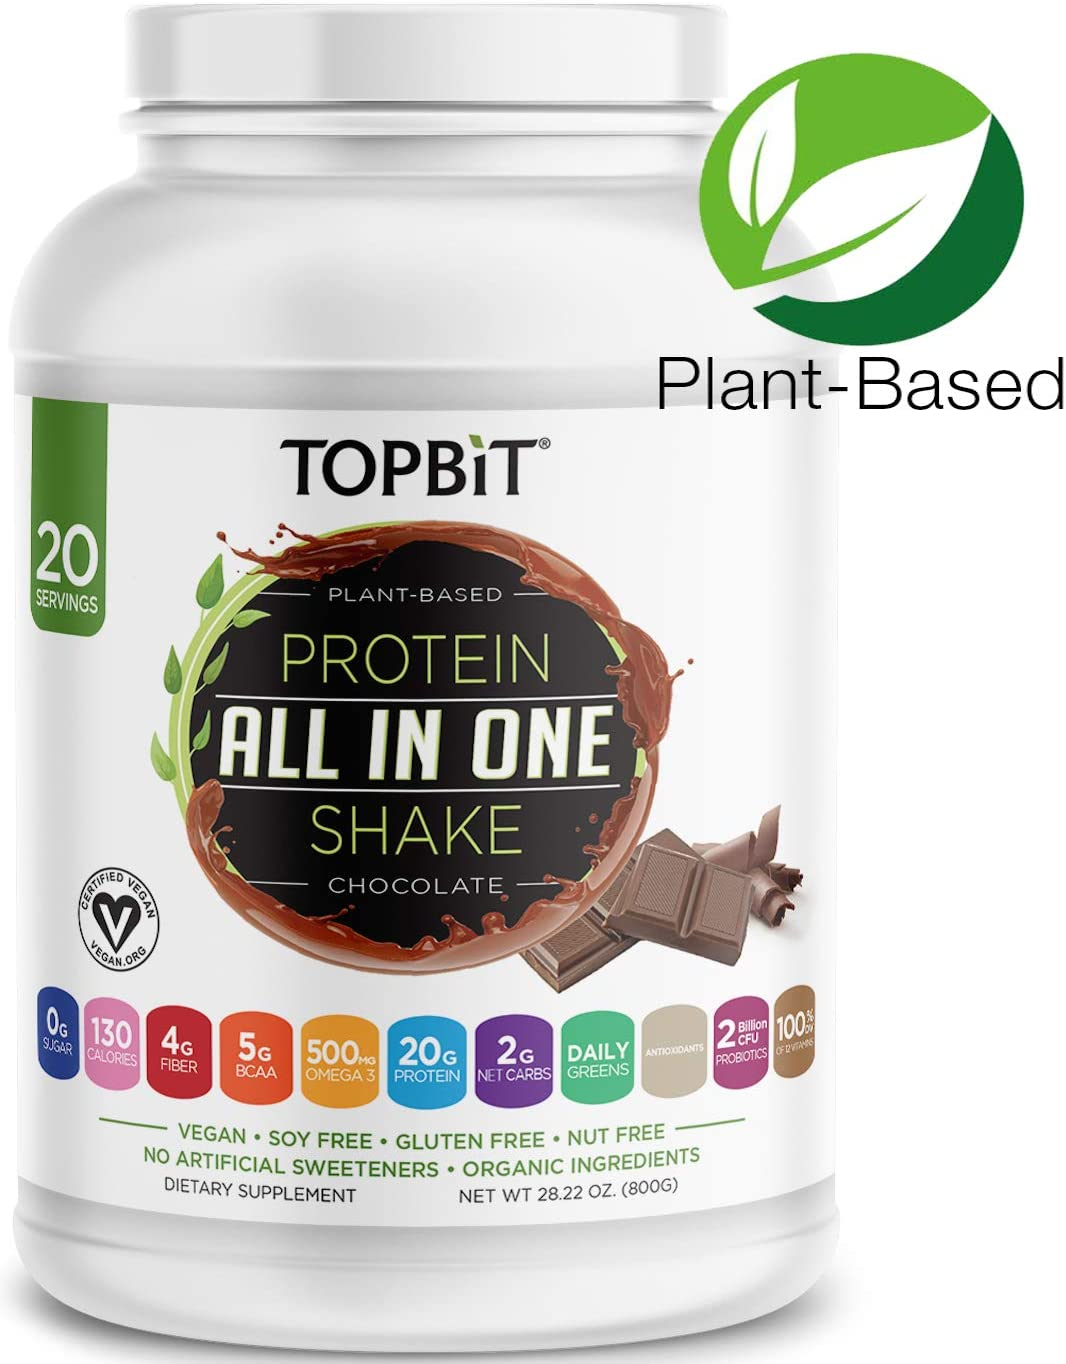 TOPBiT All-in-One Plant Protein Powder, Chocolate Vegan Protein Powder, Sugar Free Protein, Stevia Free, Nut Free, Soy Free, 20g Protein Shake, Probiotics, BCAA, Greens, 1.8LB